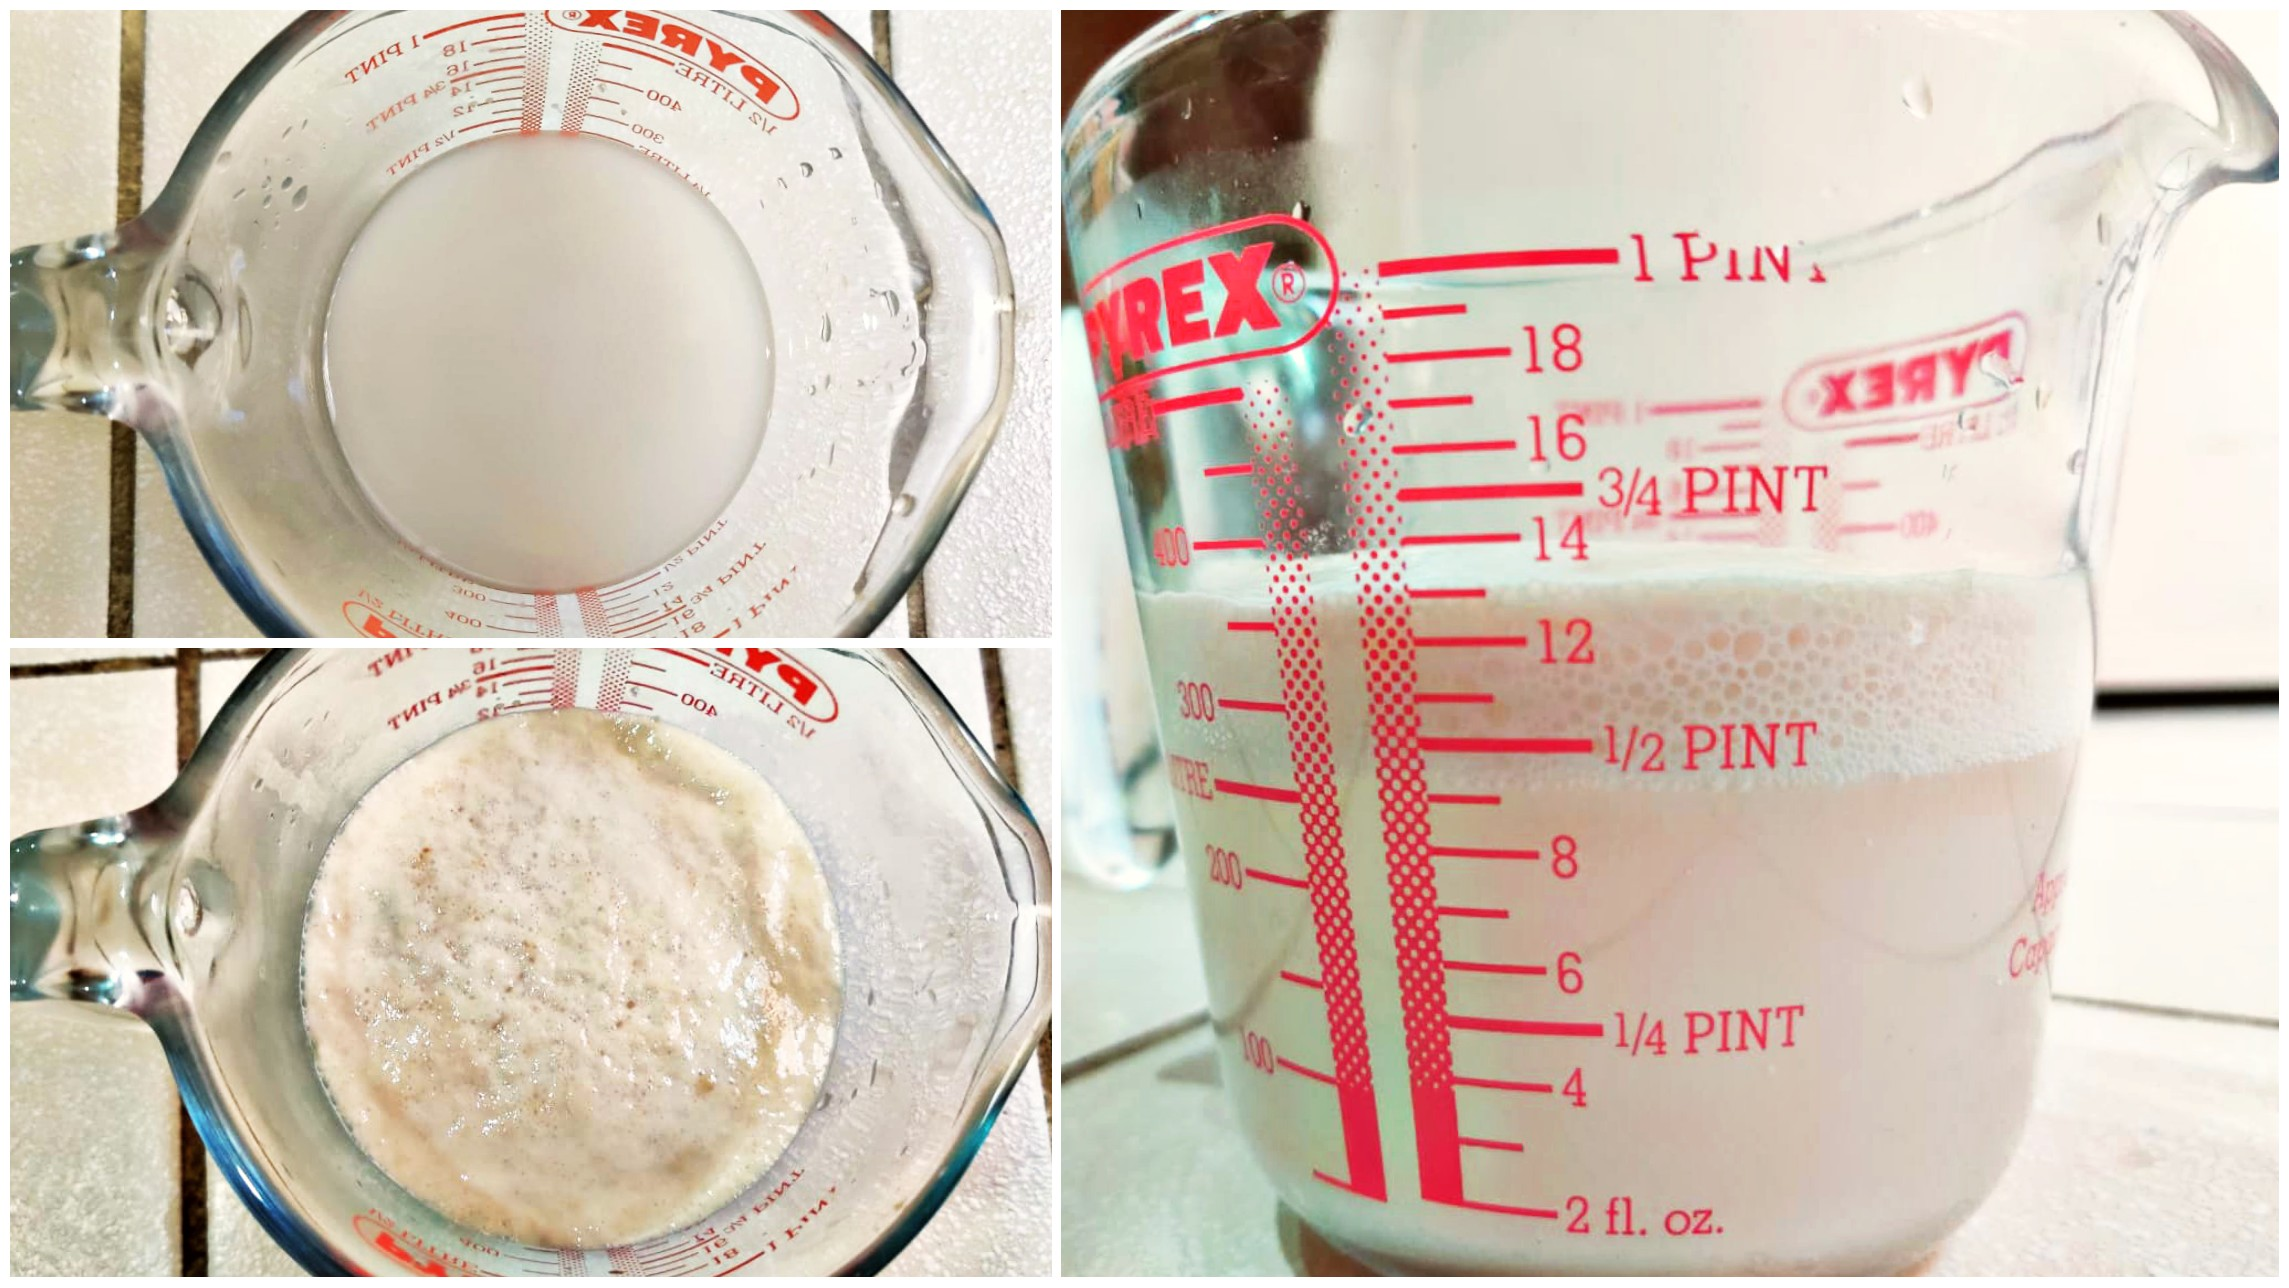 dough with active dry yeast